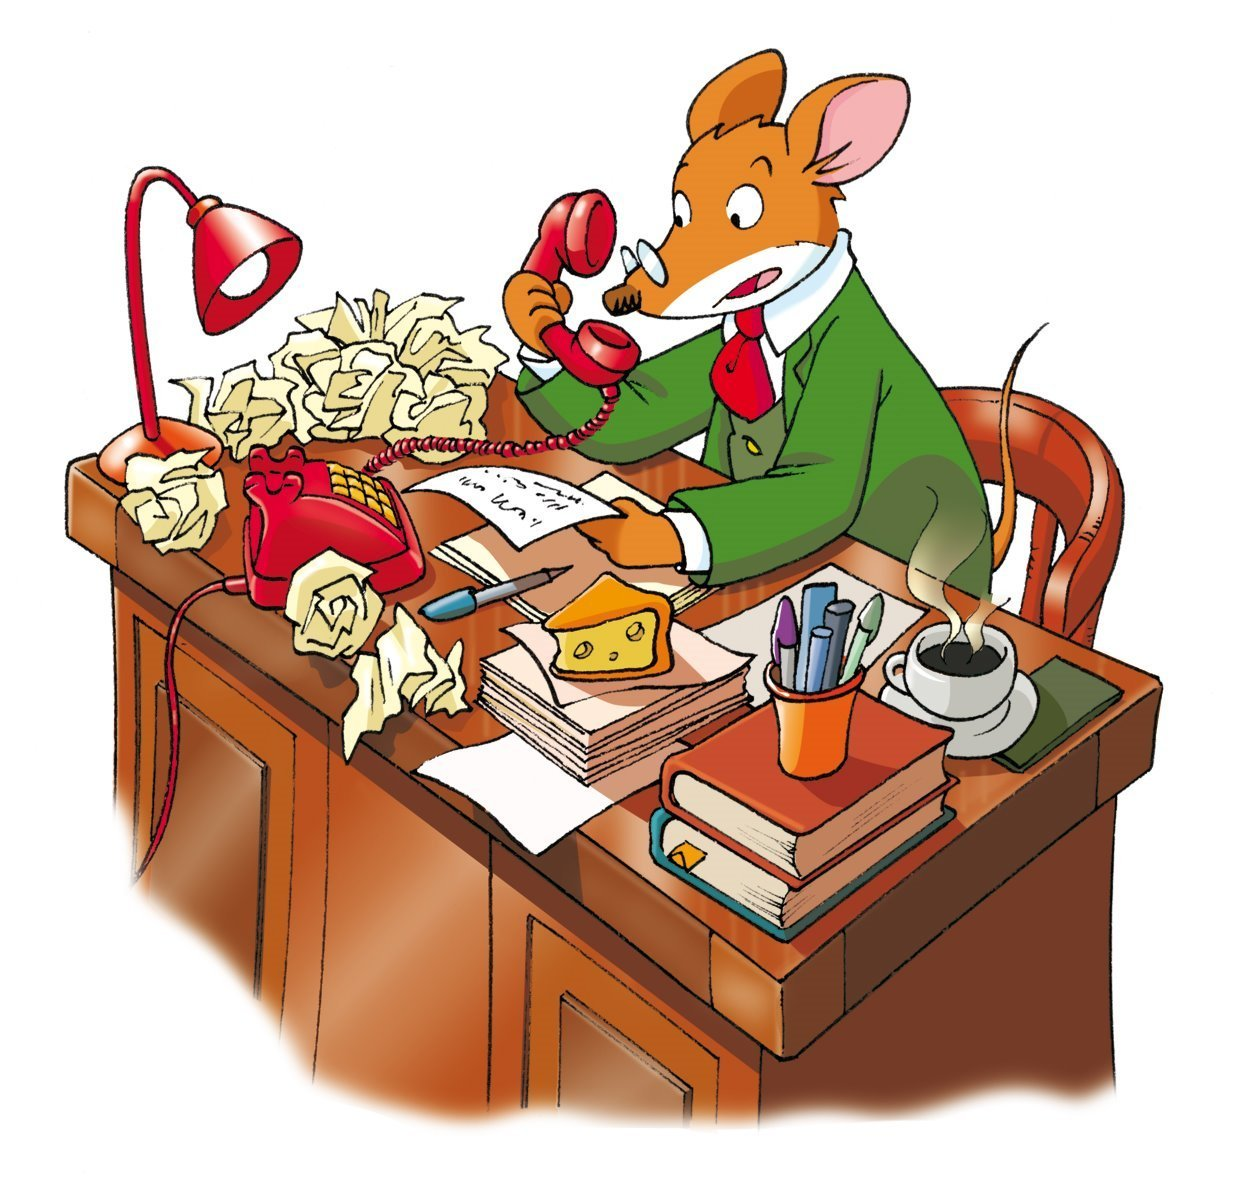 geronimo-stilton.jpg